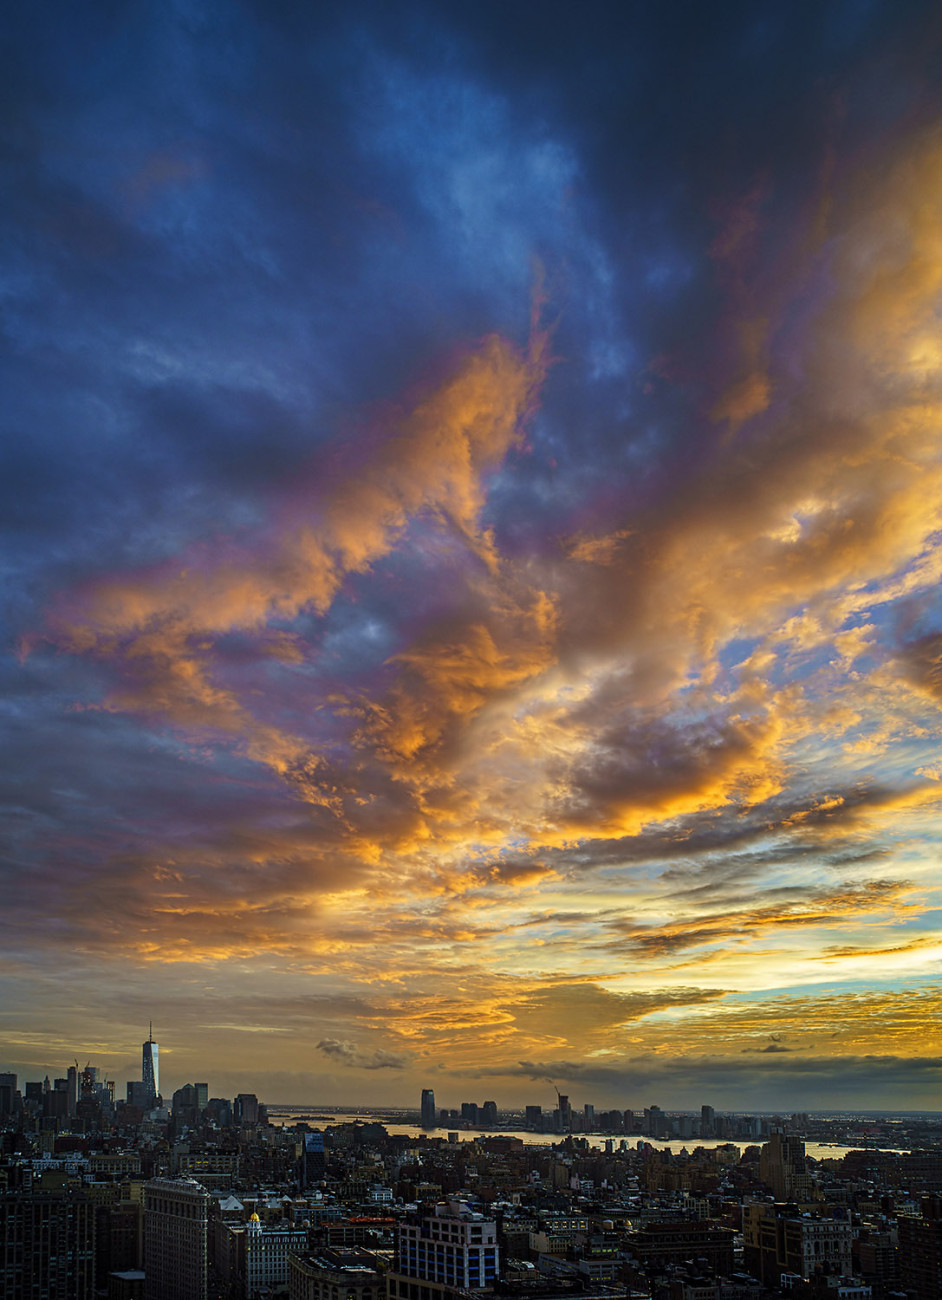 Turner sunset over lower Manhattan (study 2), NY, 2015